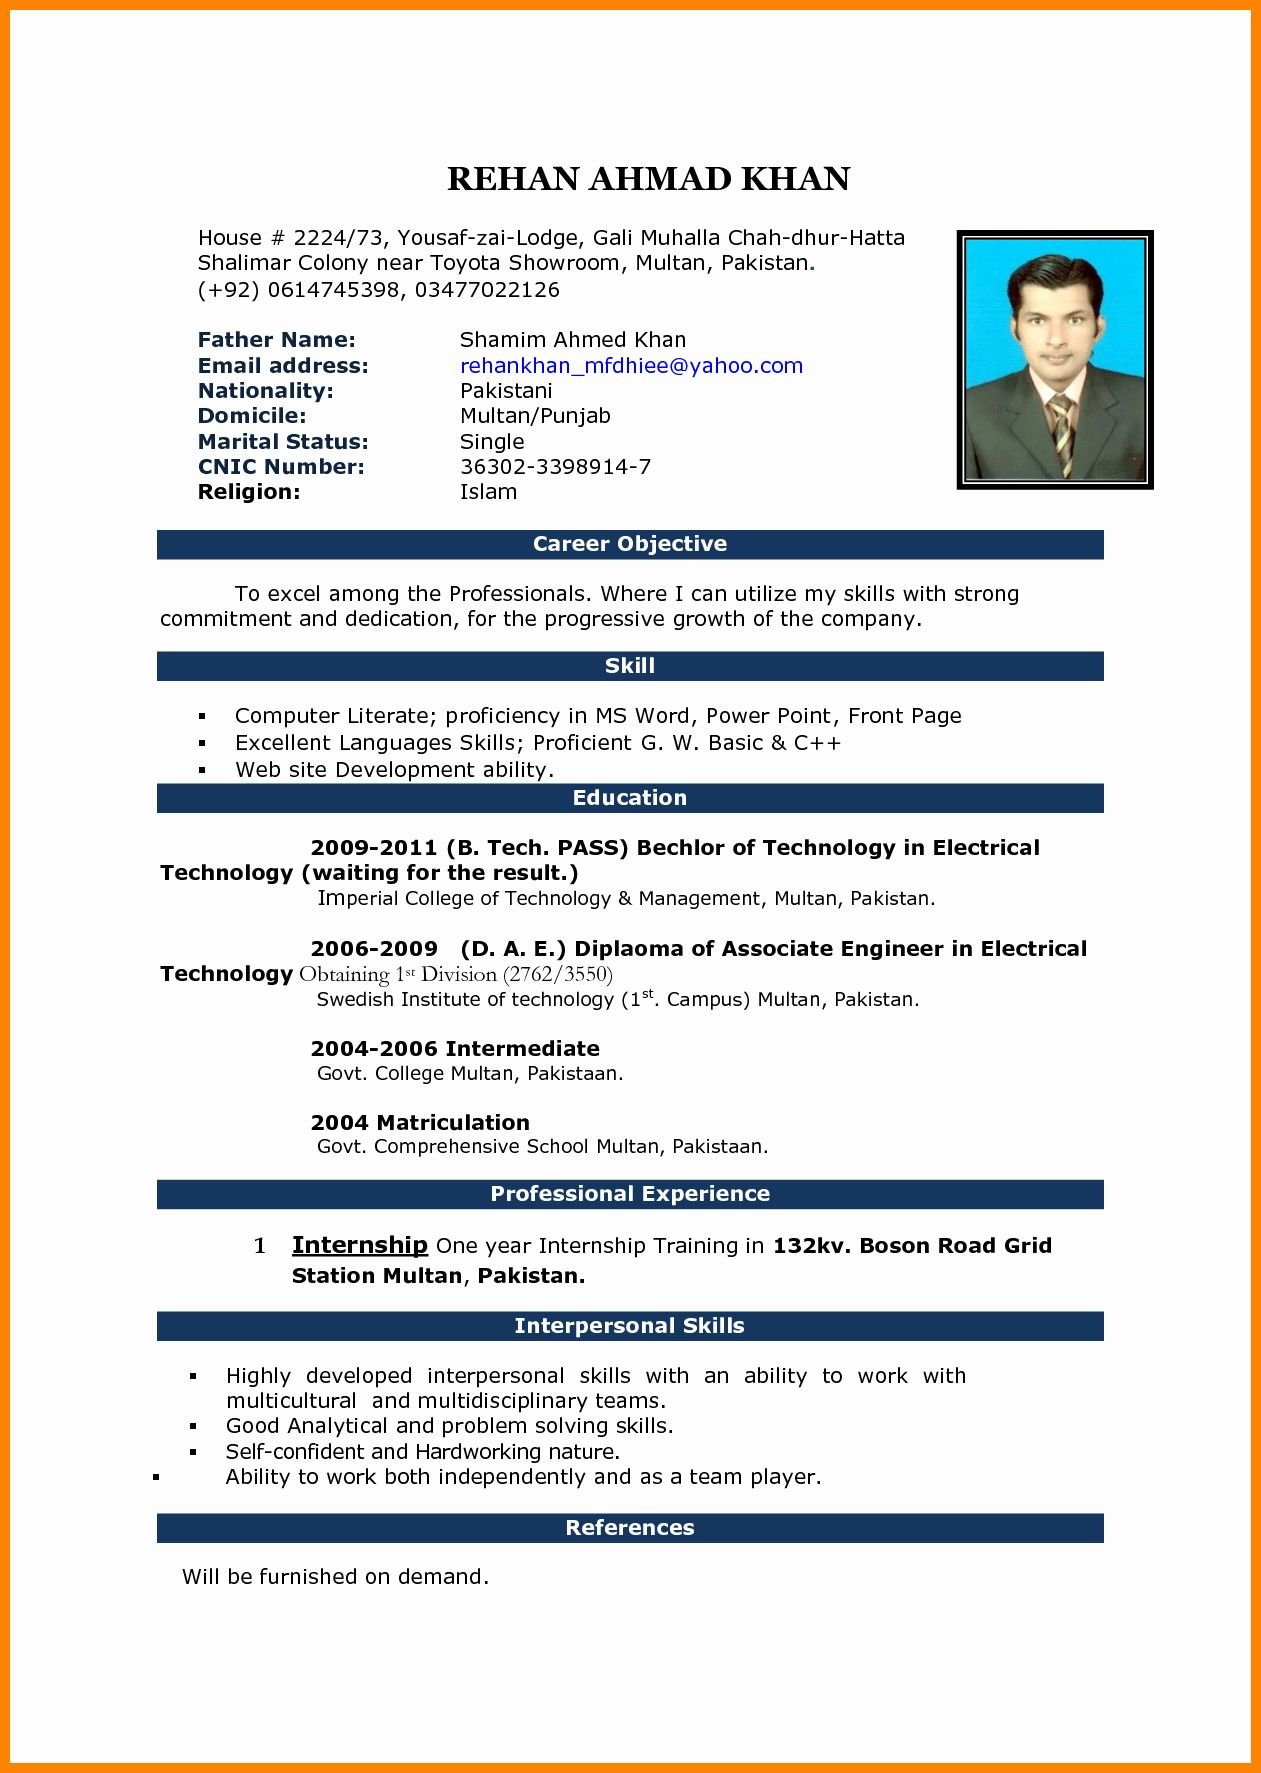 Downloadable Resume Template Word Awesome 5 Cv Samples Word File In 2020 Resume Template Word Microsoft Resume Templates Cv Template Download